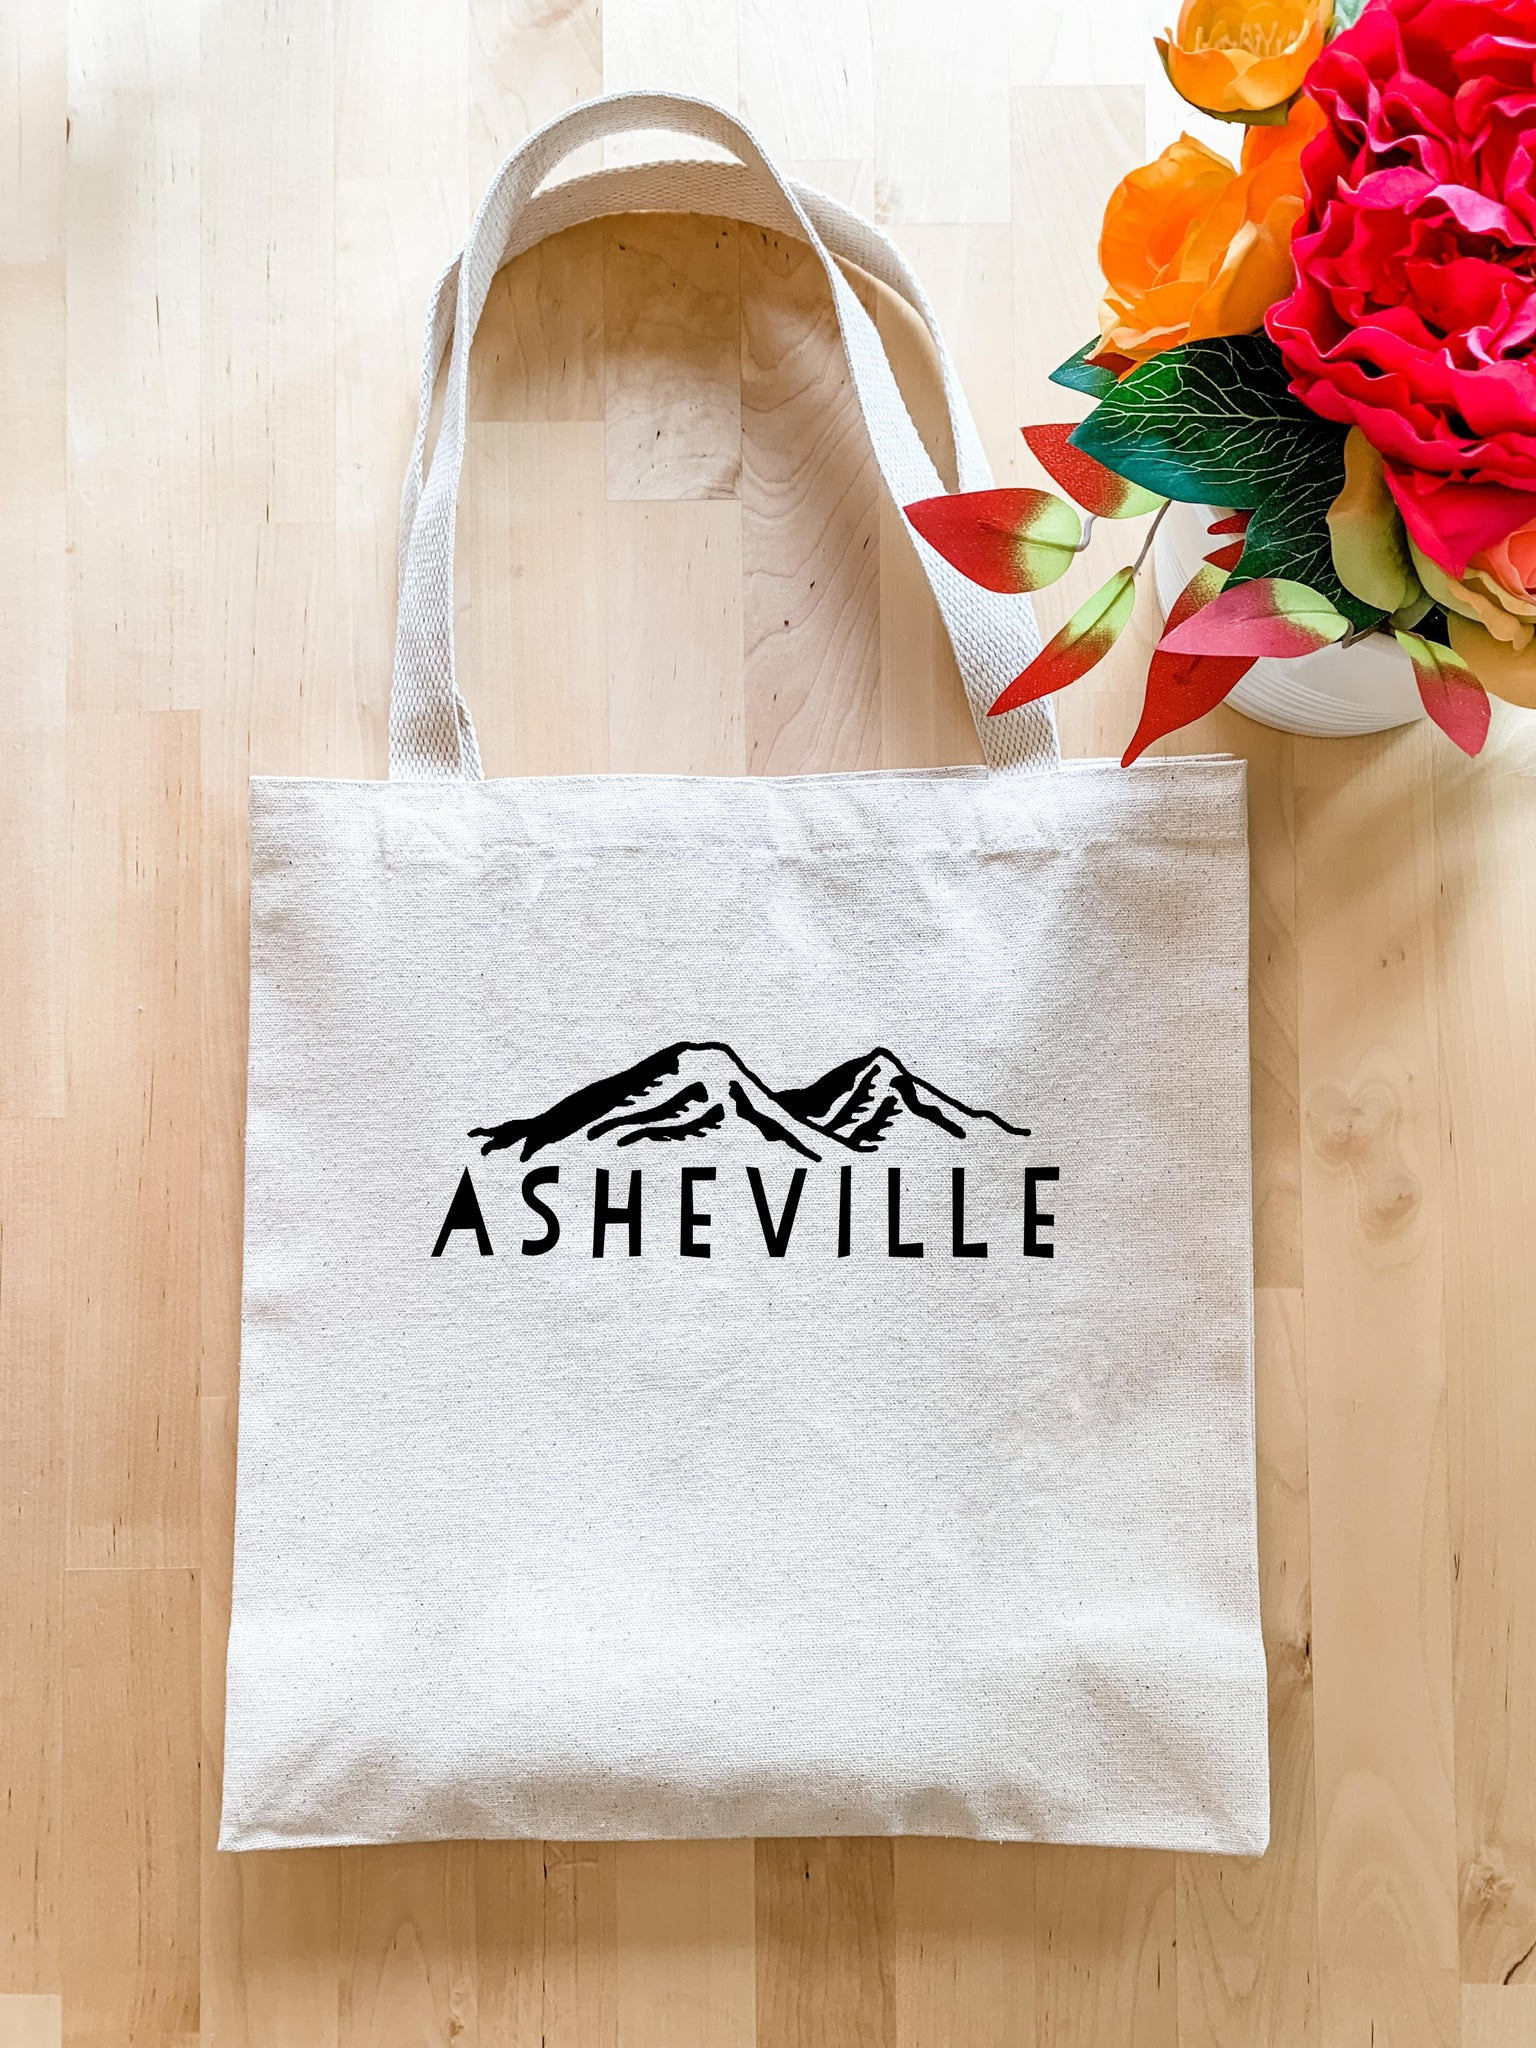 Asheville NC Mountains - Tote Bag - MoonlightMakers